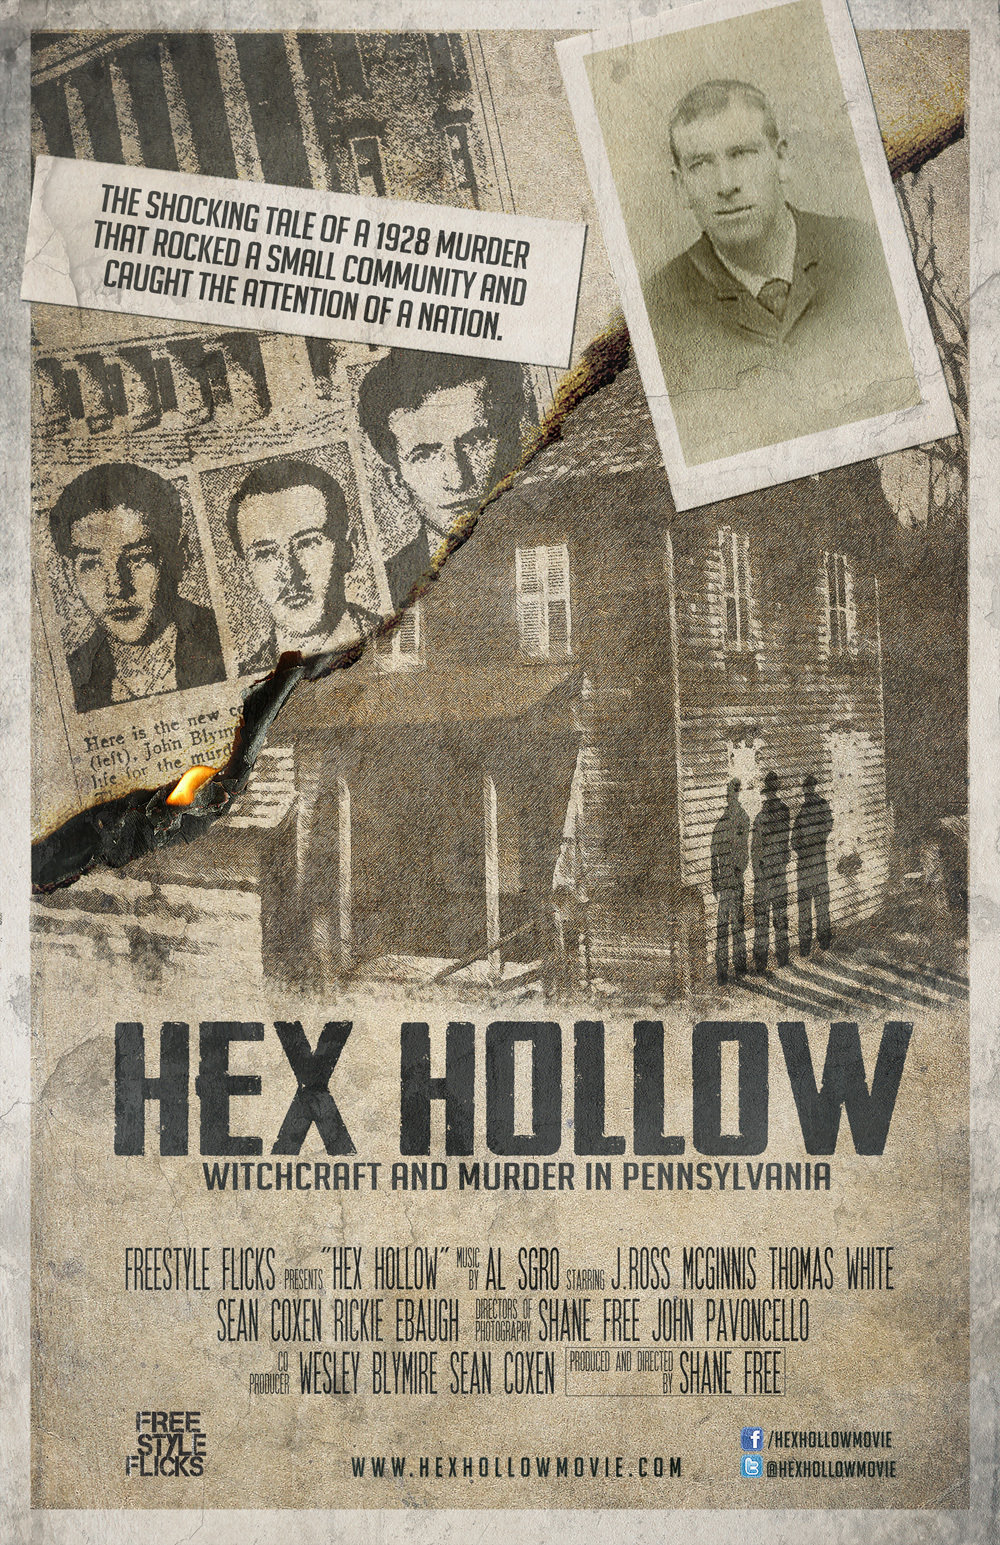 The poster for the DVD of Hex Hollow